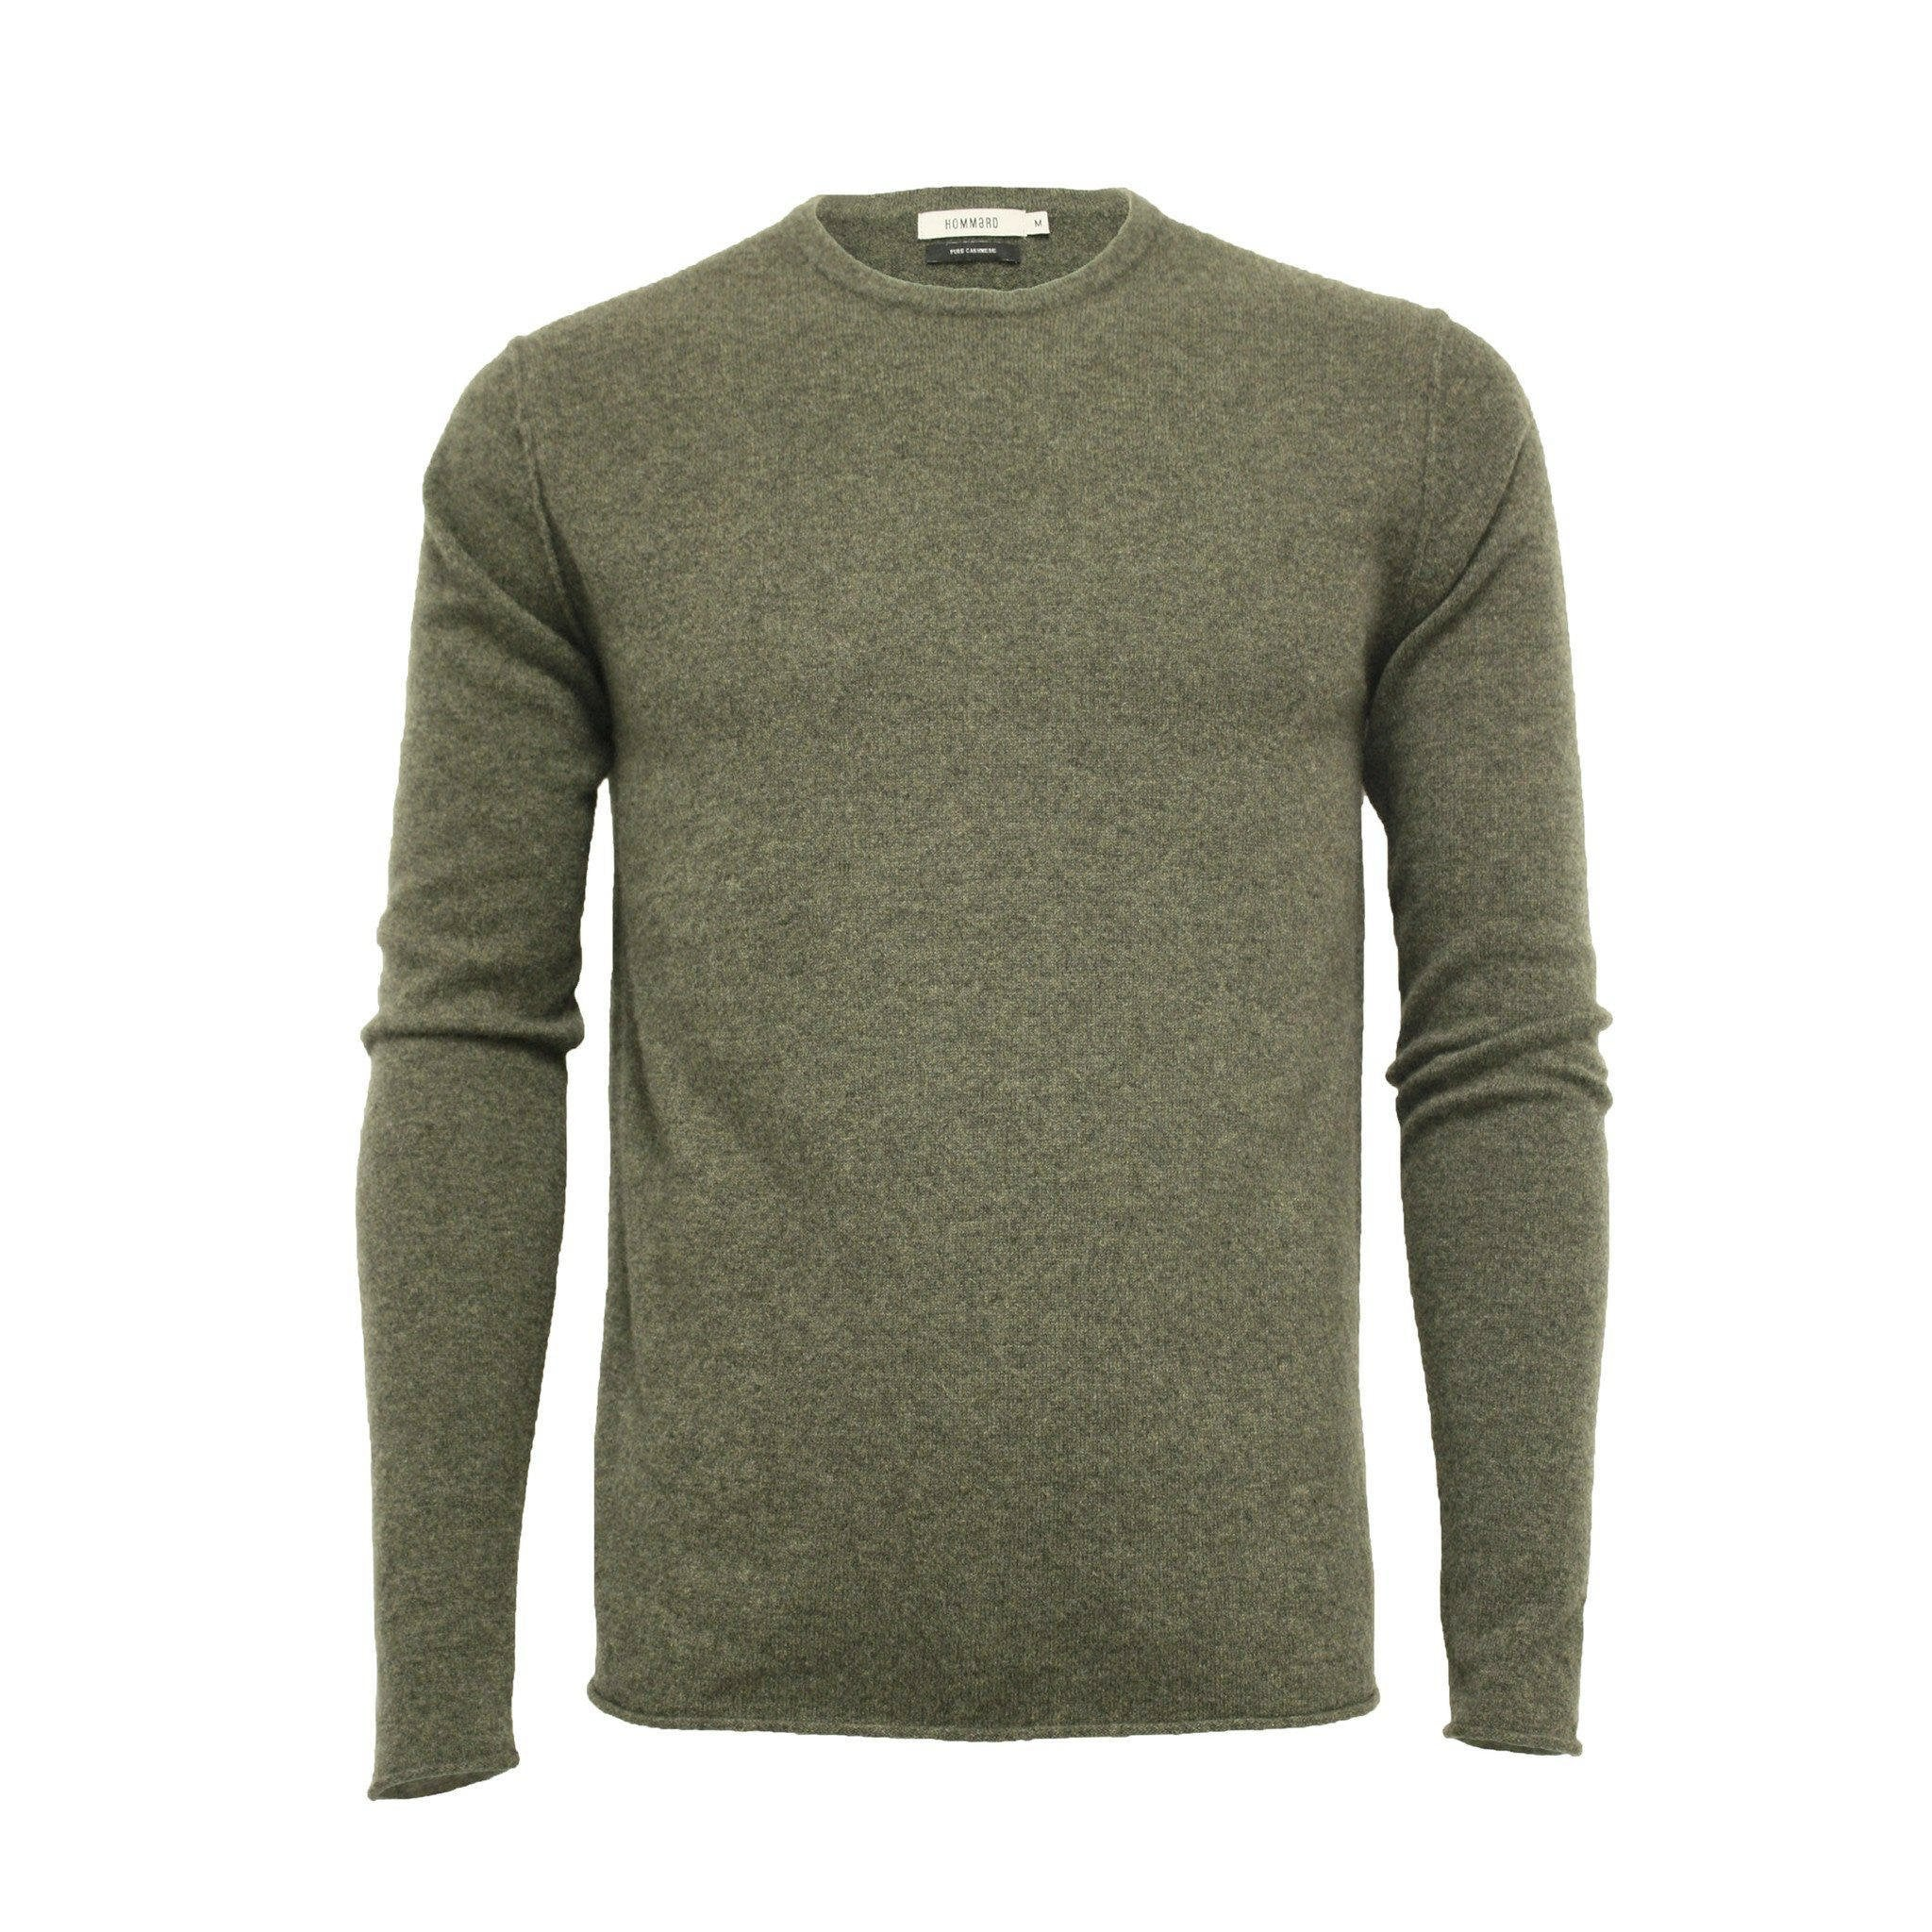 Men´s Cashmere Crew Neck Sweater Ripley Army Green